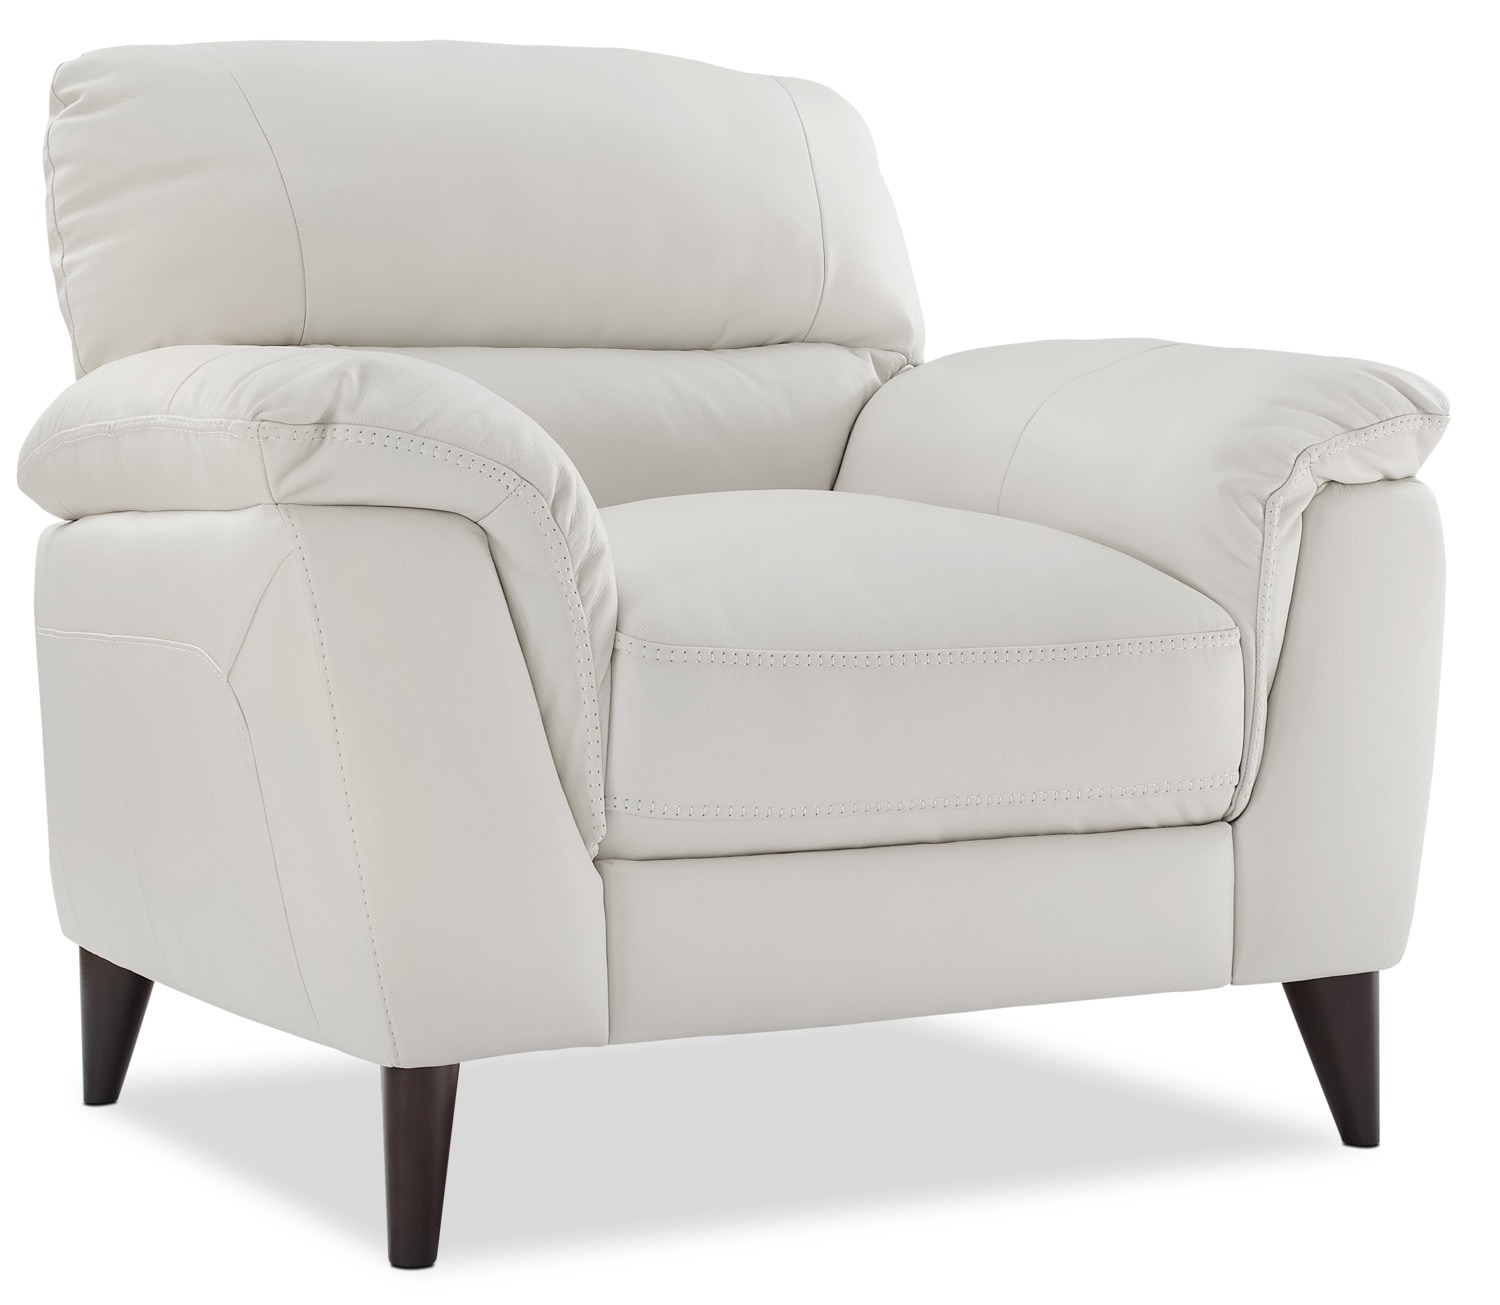 Living Room Furniture - Chloe Genuine Leather Chair – White